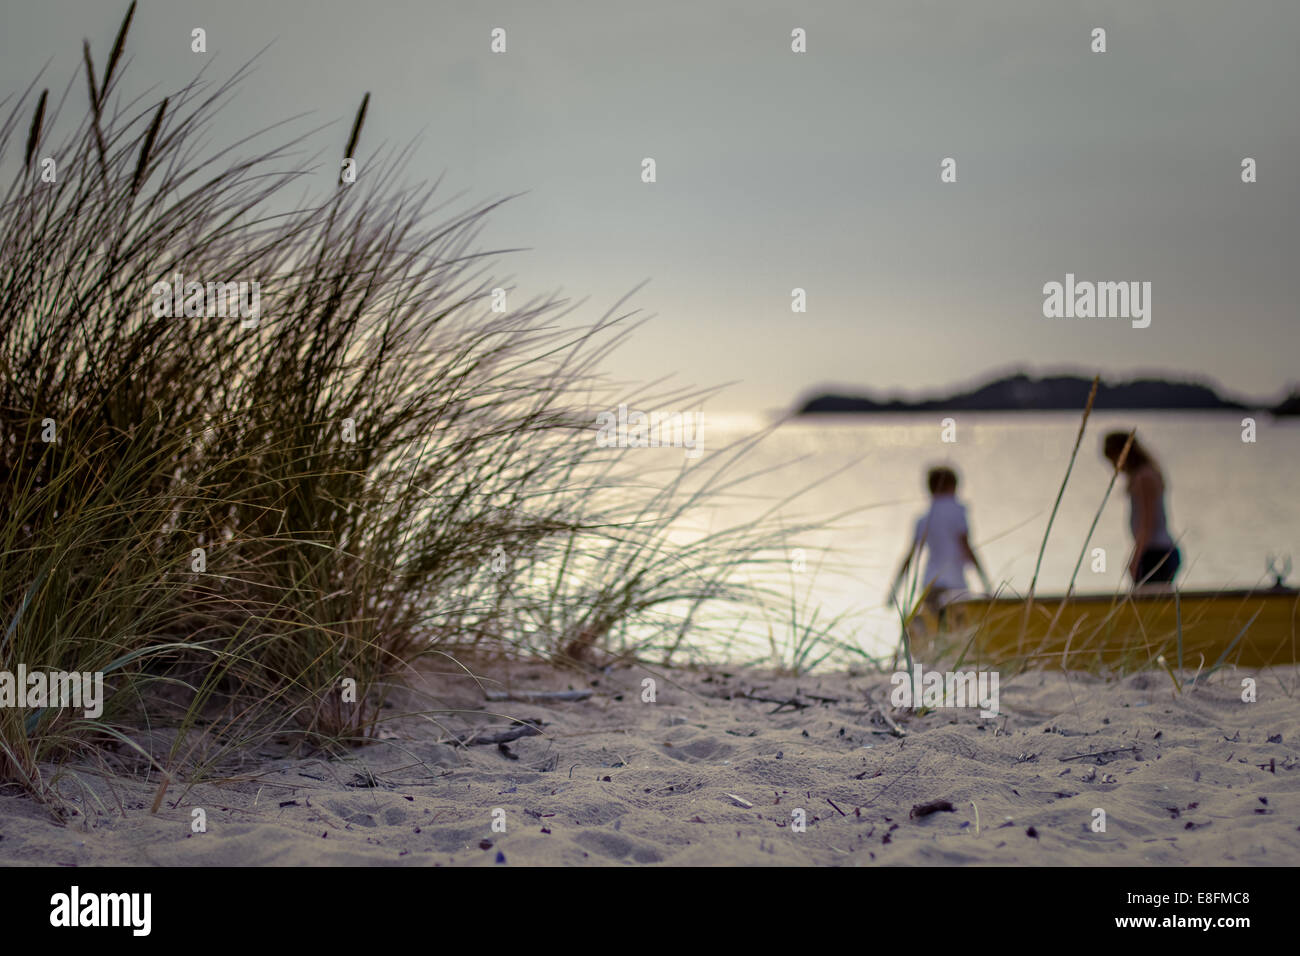 Norway, Kids playing on beach - Stock Image